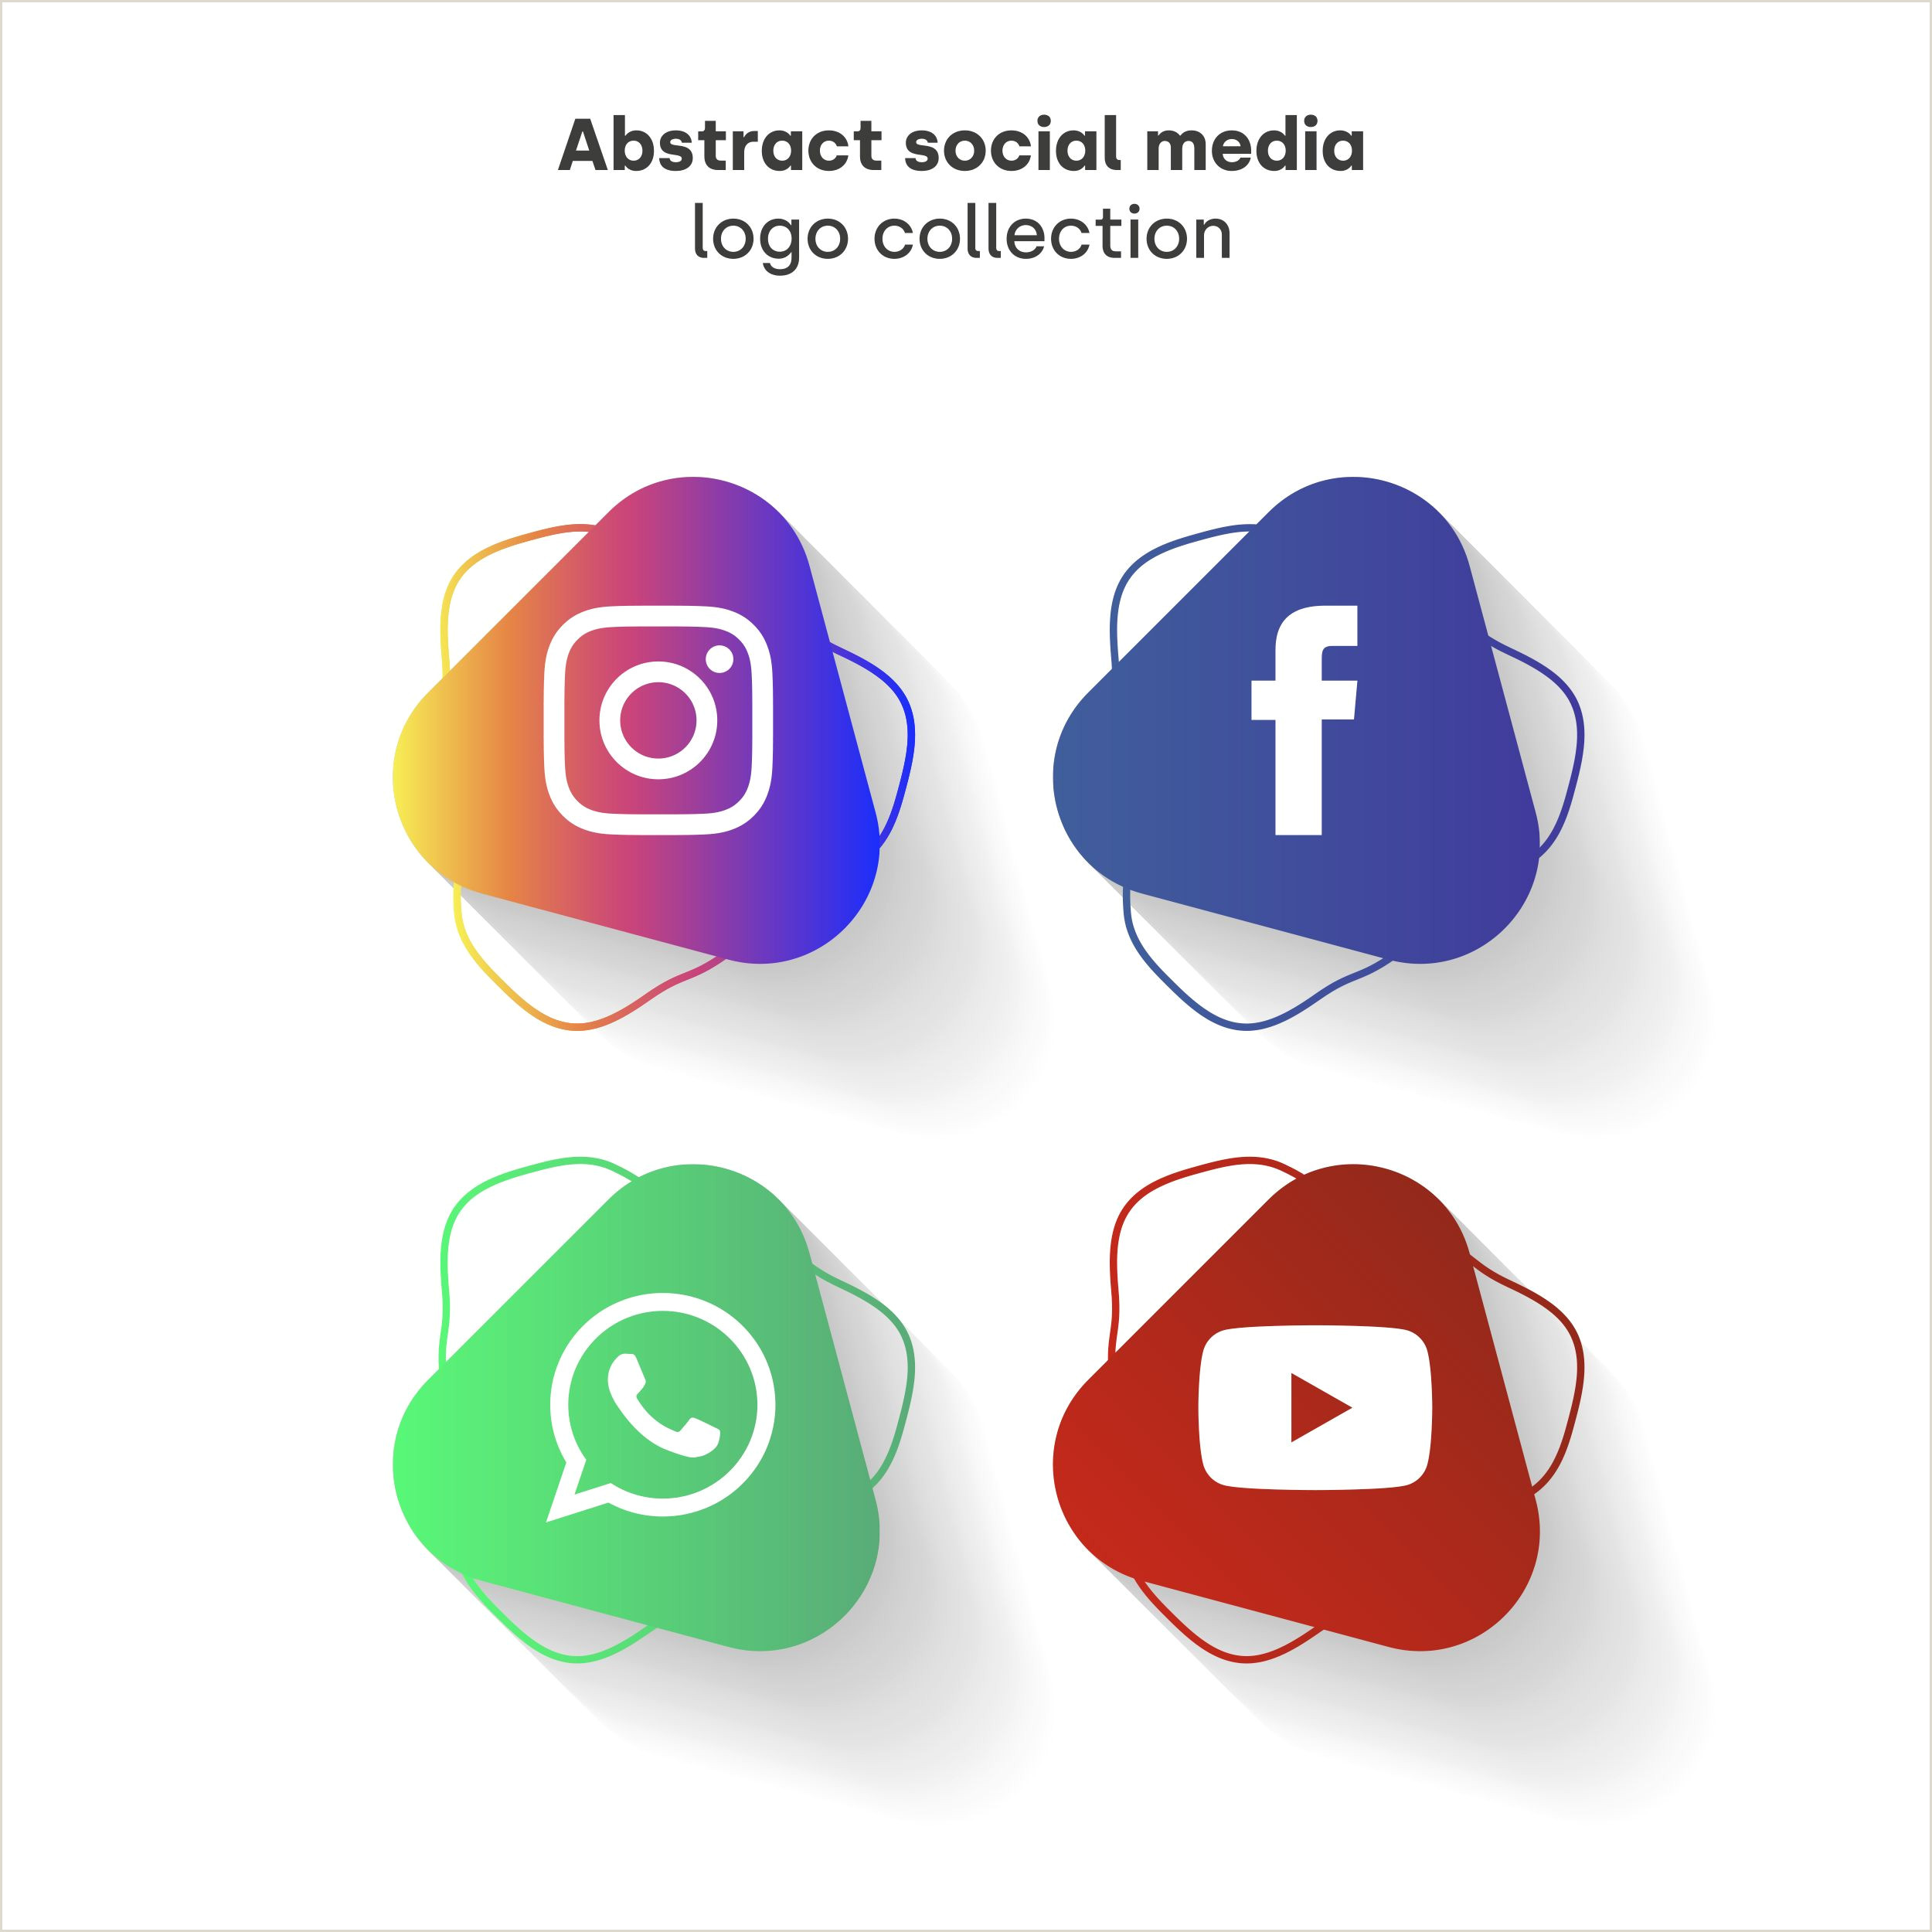 Social Media Symbols For Business Cards Download Abstract Social Media Logo Collection For Free